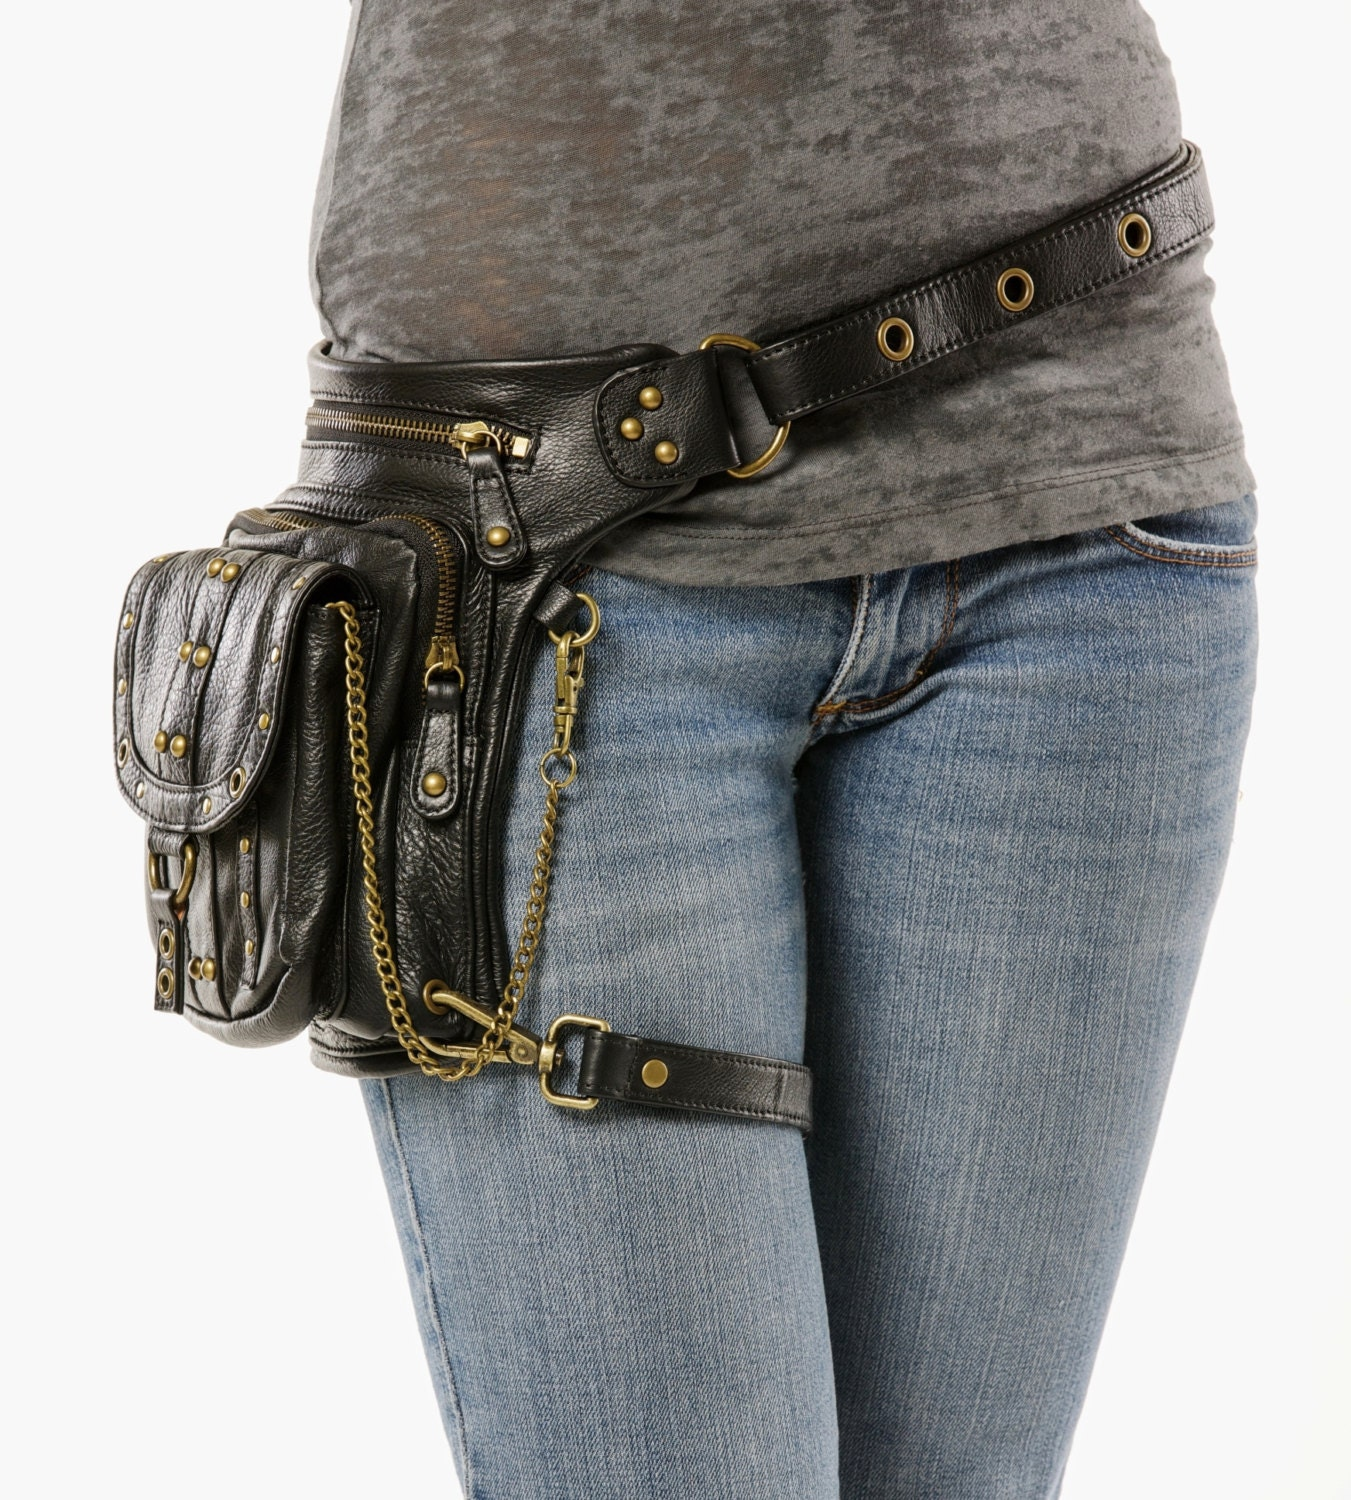 Uptown Pack Black Thigh Holster Protected Purse Shoulder